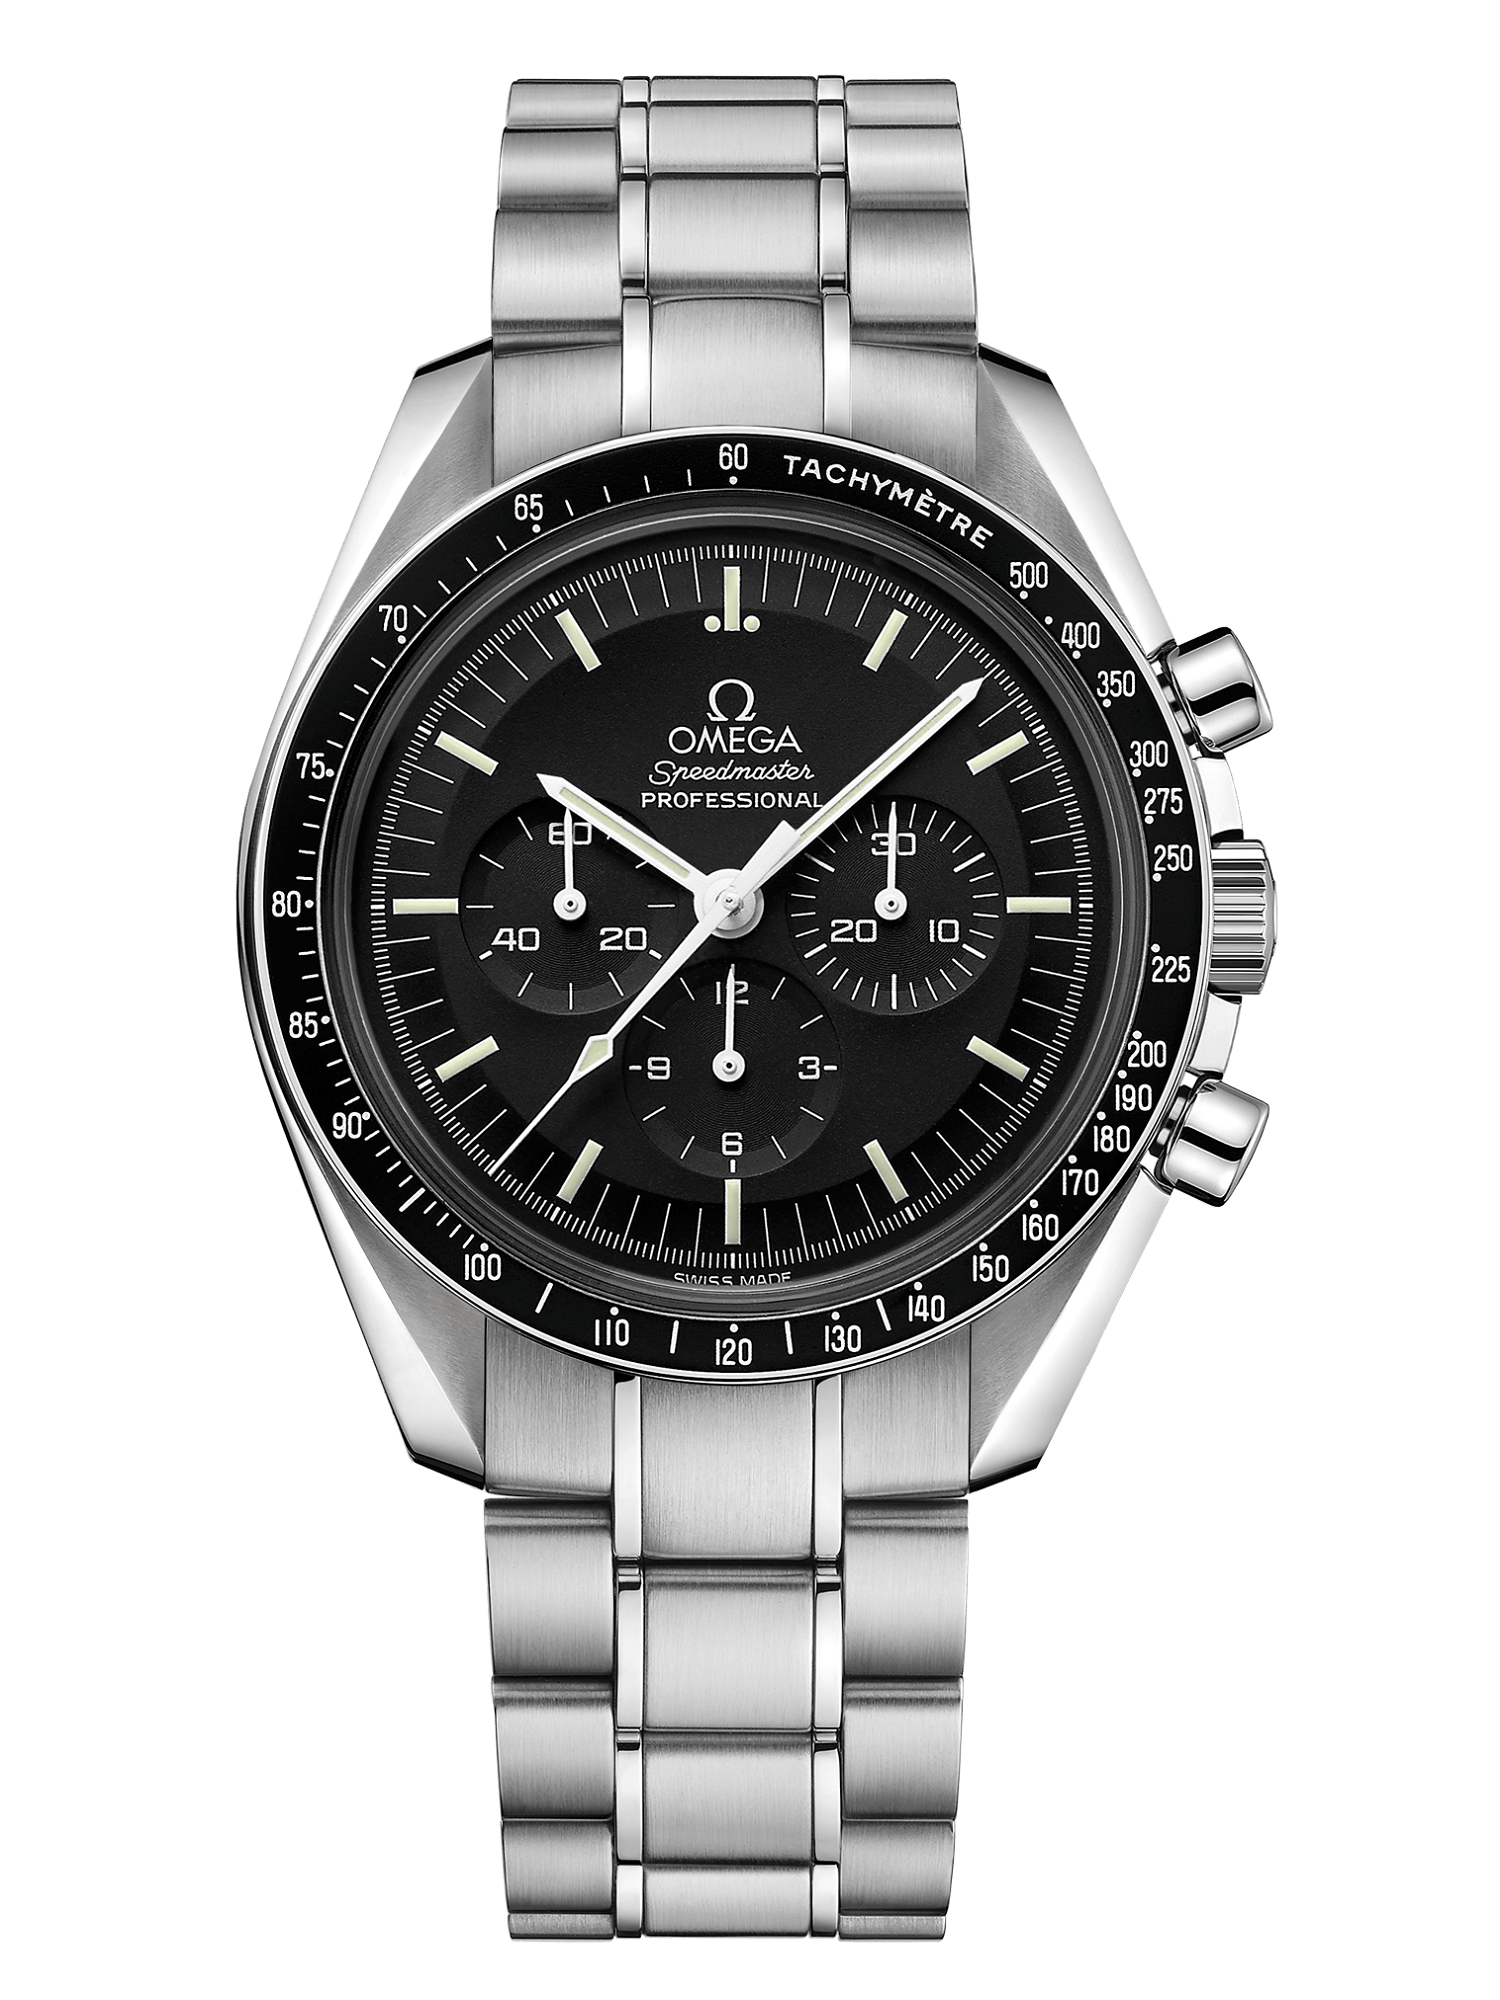 10 Best Sapphire Crystal Watches in 2020 – Buyer's Guide & Reviews! 12